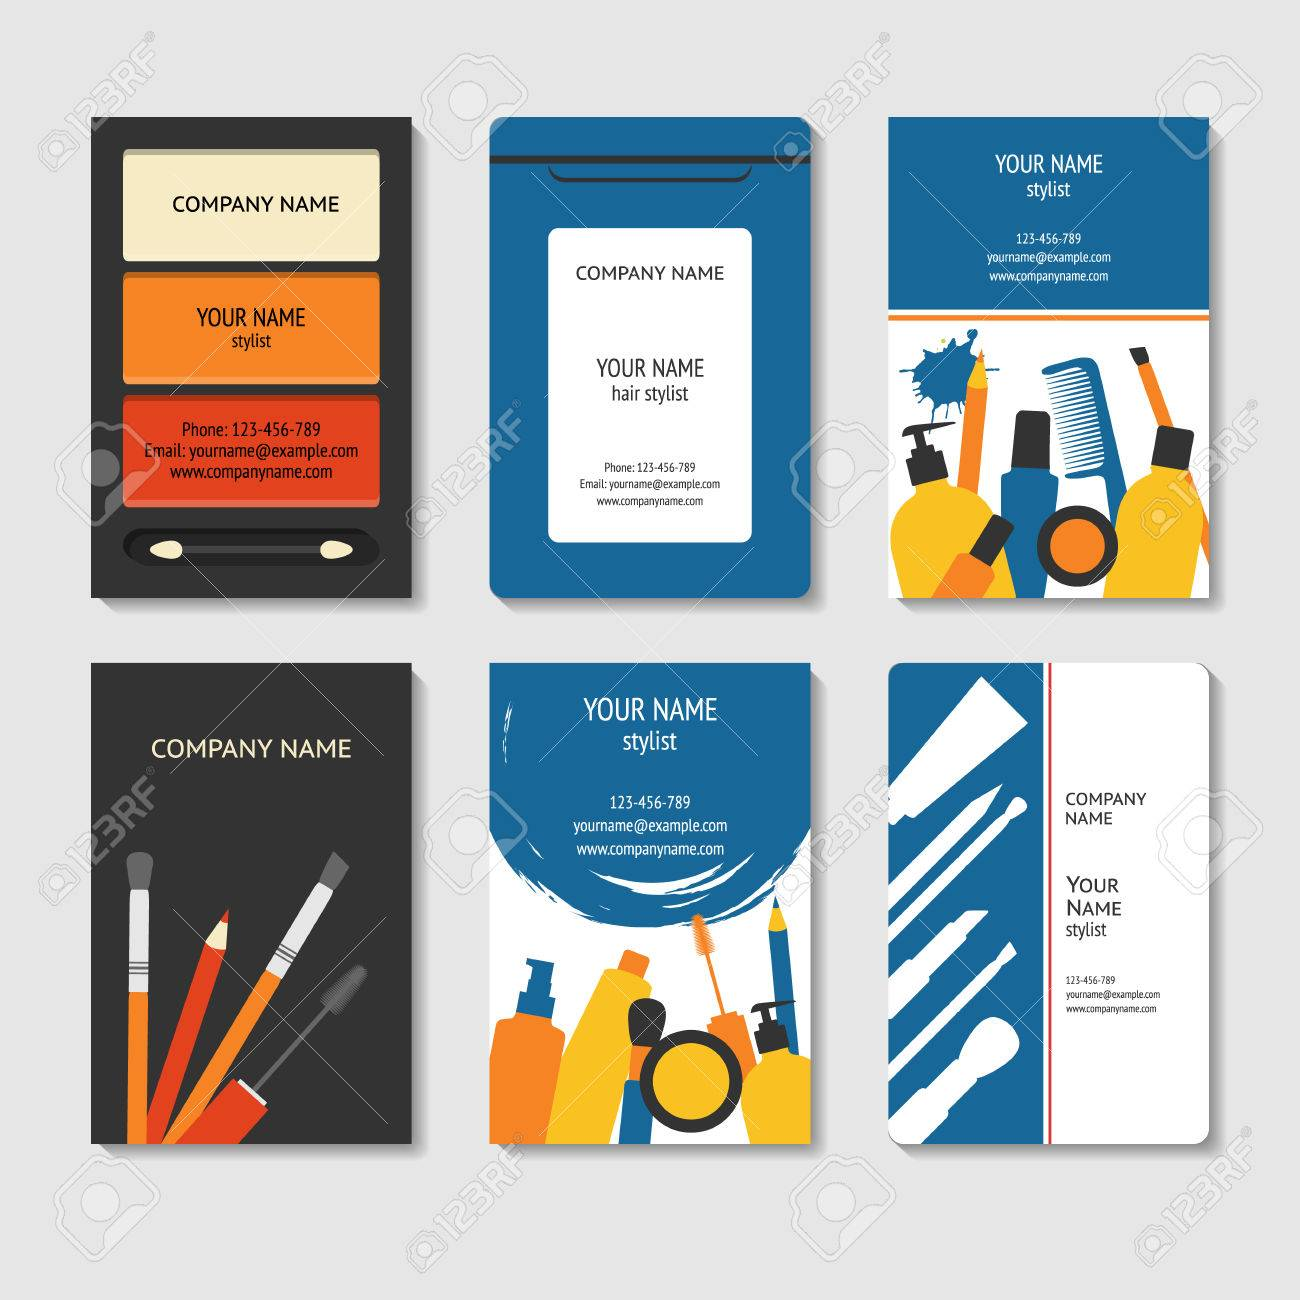 Cosmetic and beauty theme business cards set template for poster cosmetic and beauty theme business cards set template for poster colorful creative brochure colourmoves